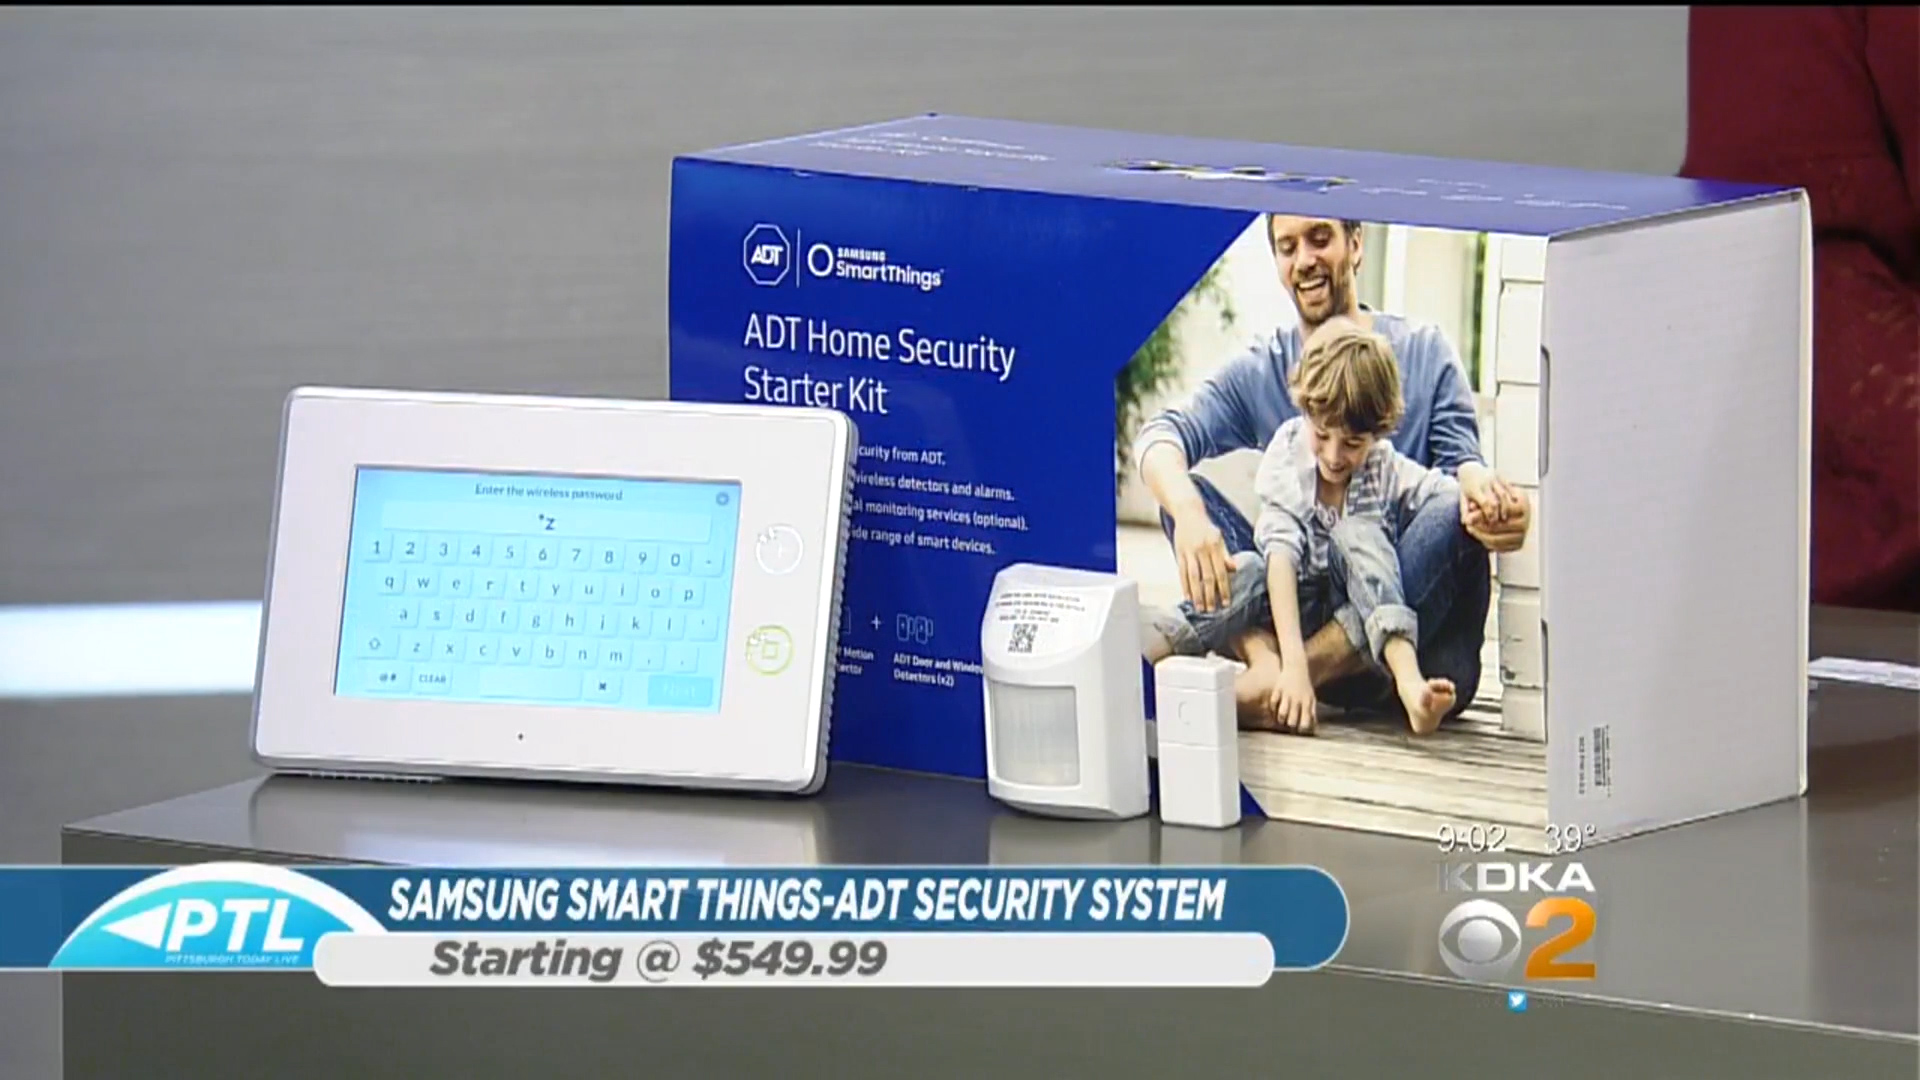 Samsung Smart Things - ADT Security System - Starts at $549Shop Now